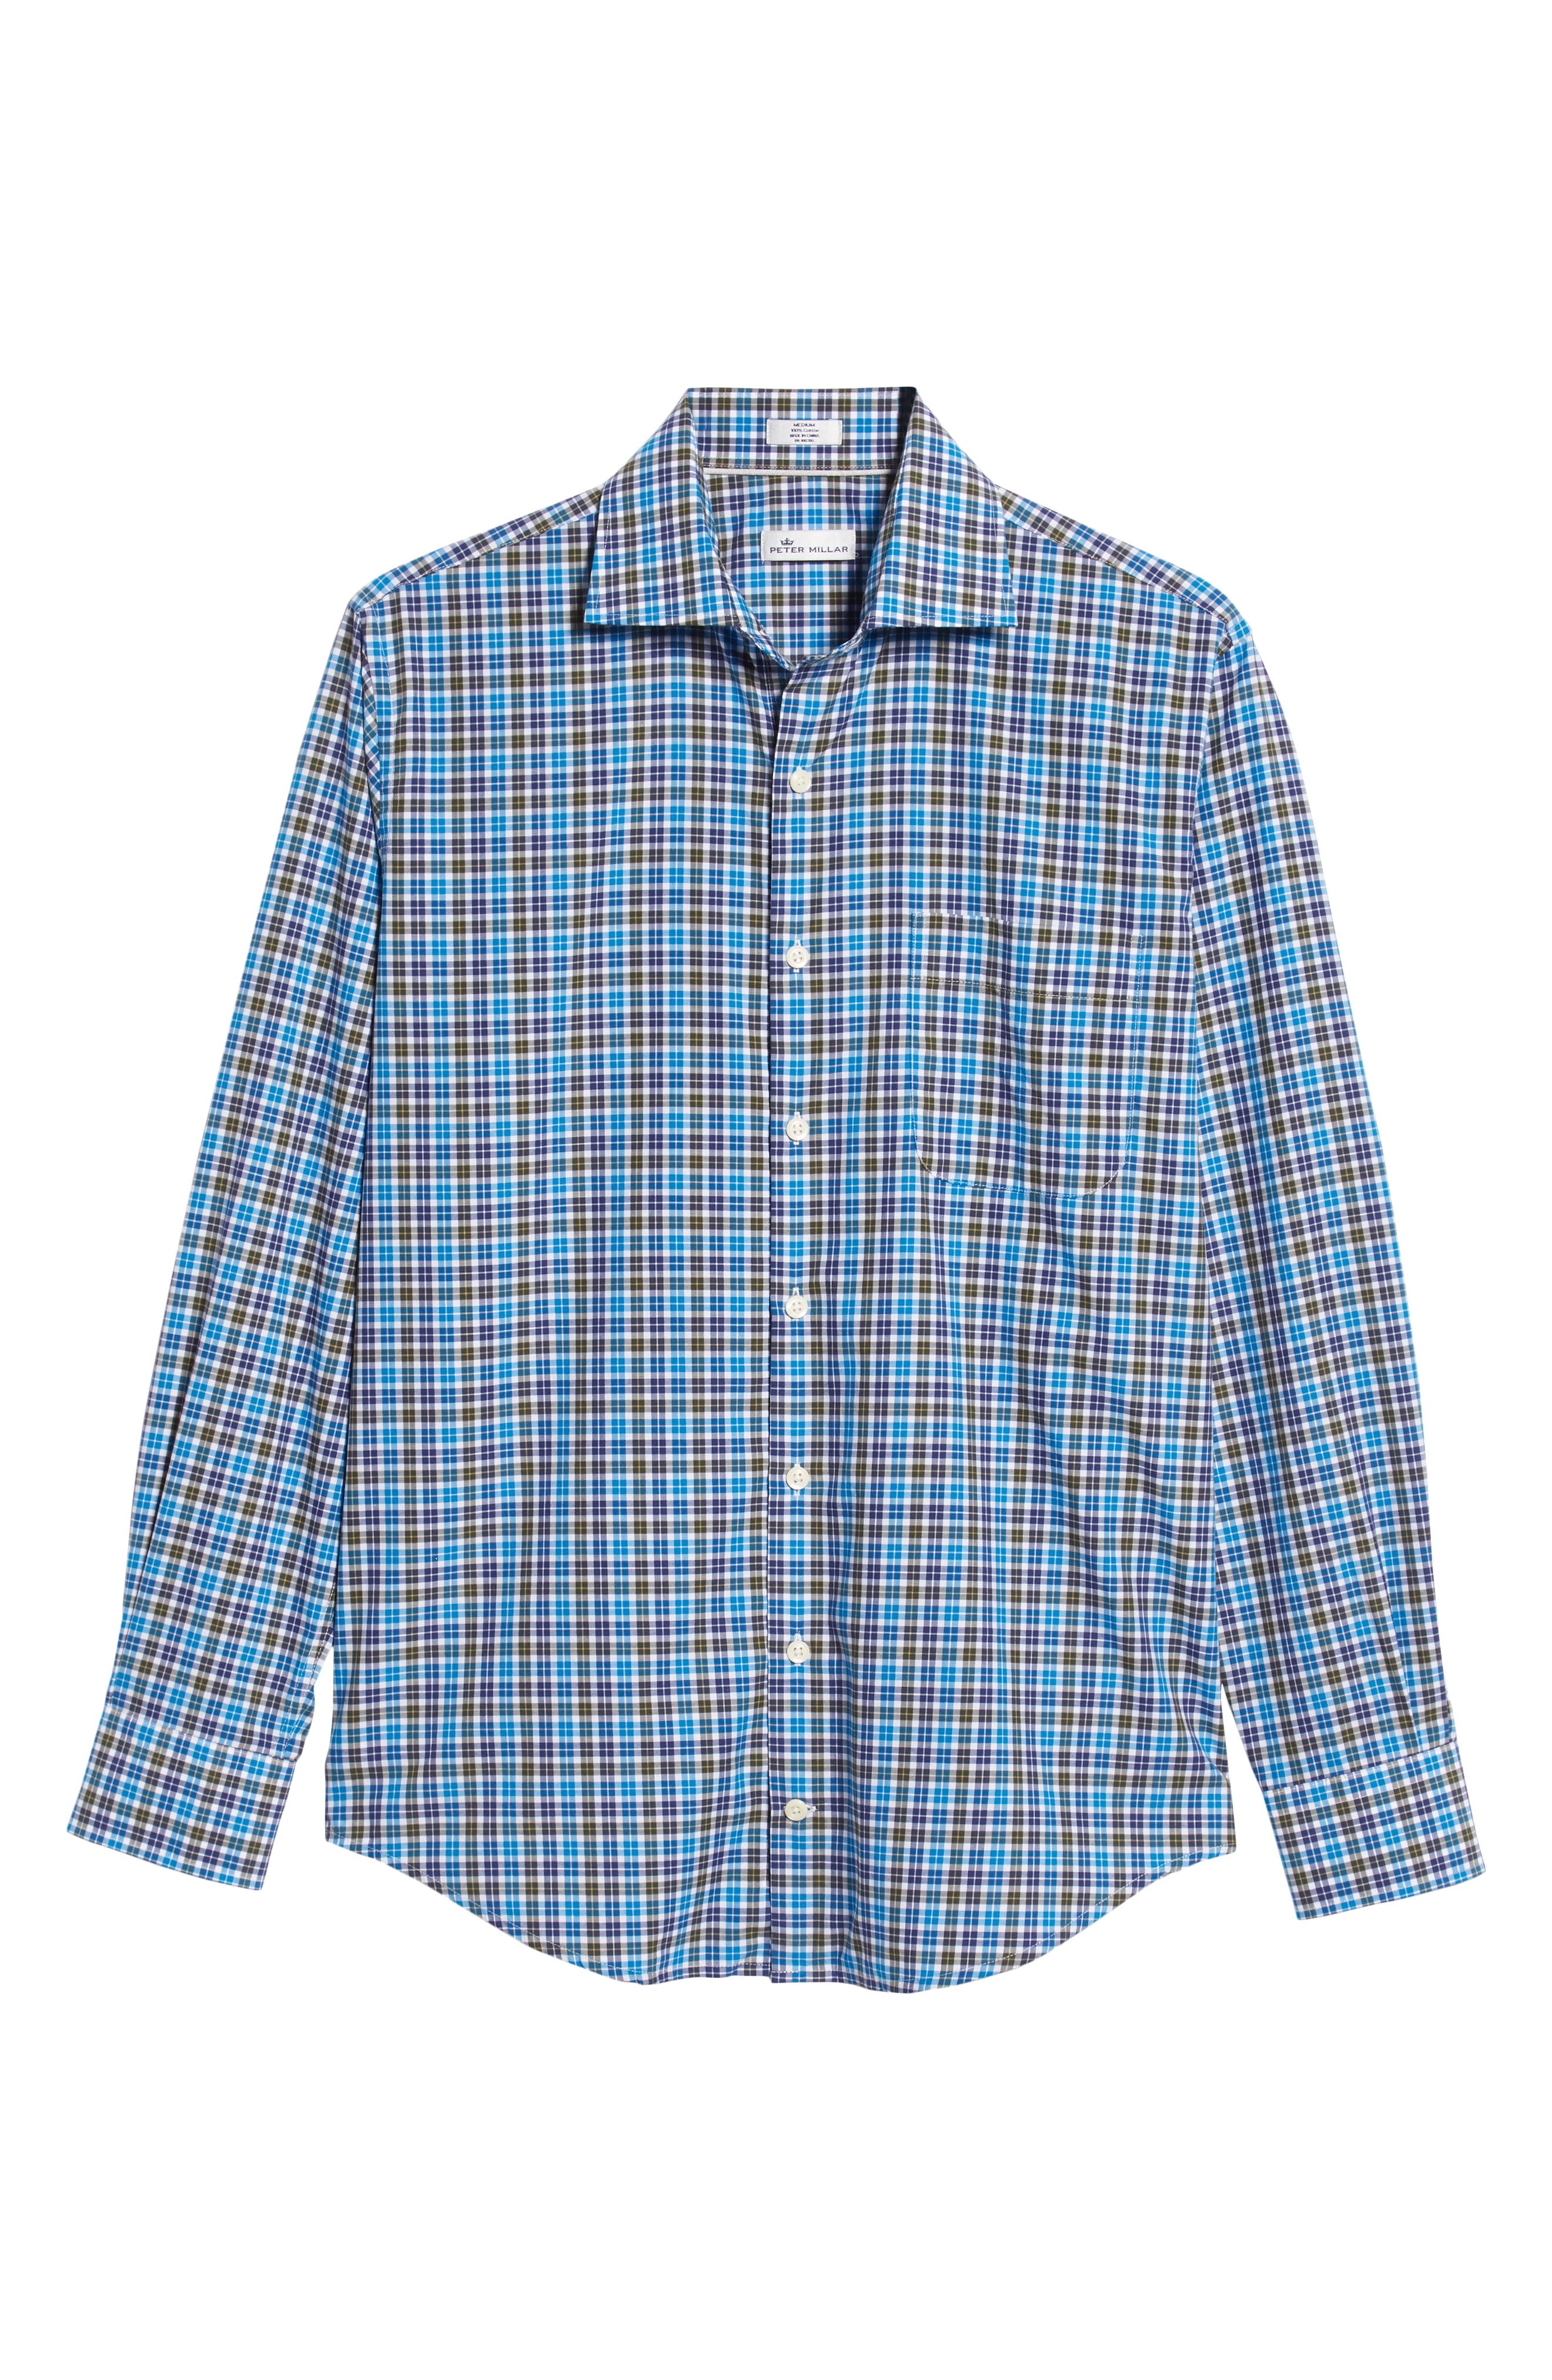 Crown Finish Salthill Check Regular Fit Sport Shirt,                             Alternate thumbnail 5, color,                             BLUE